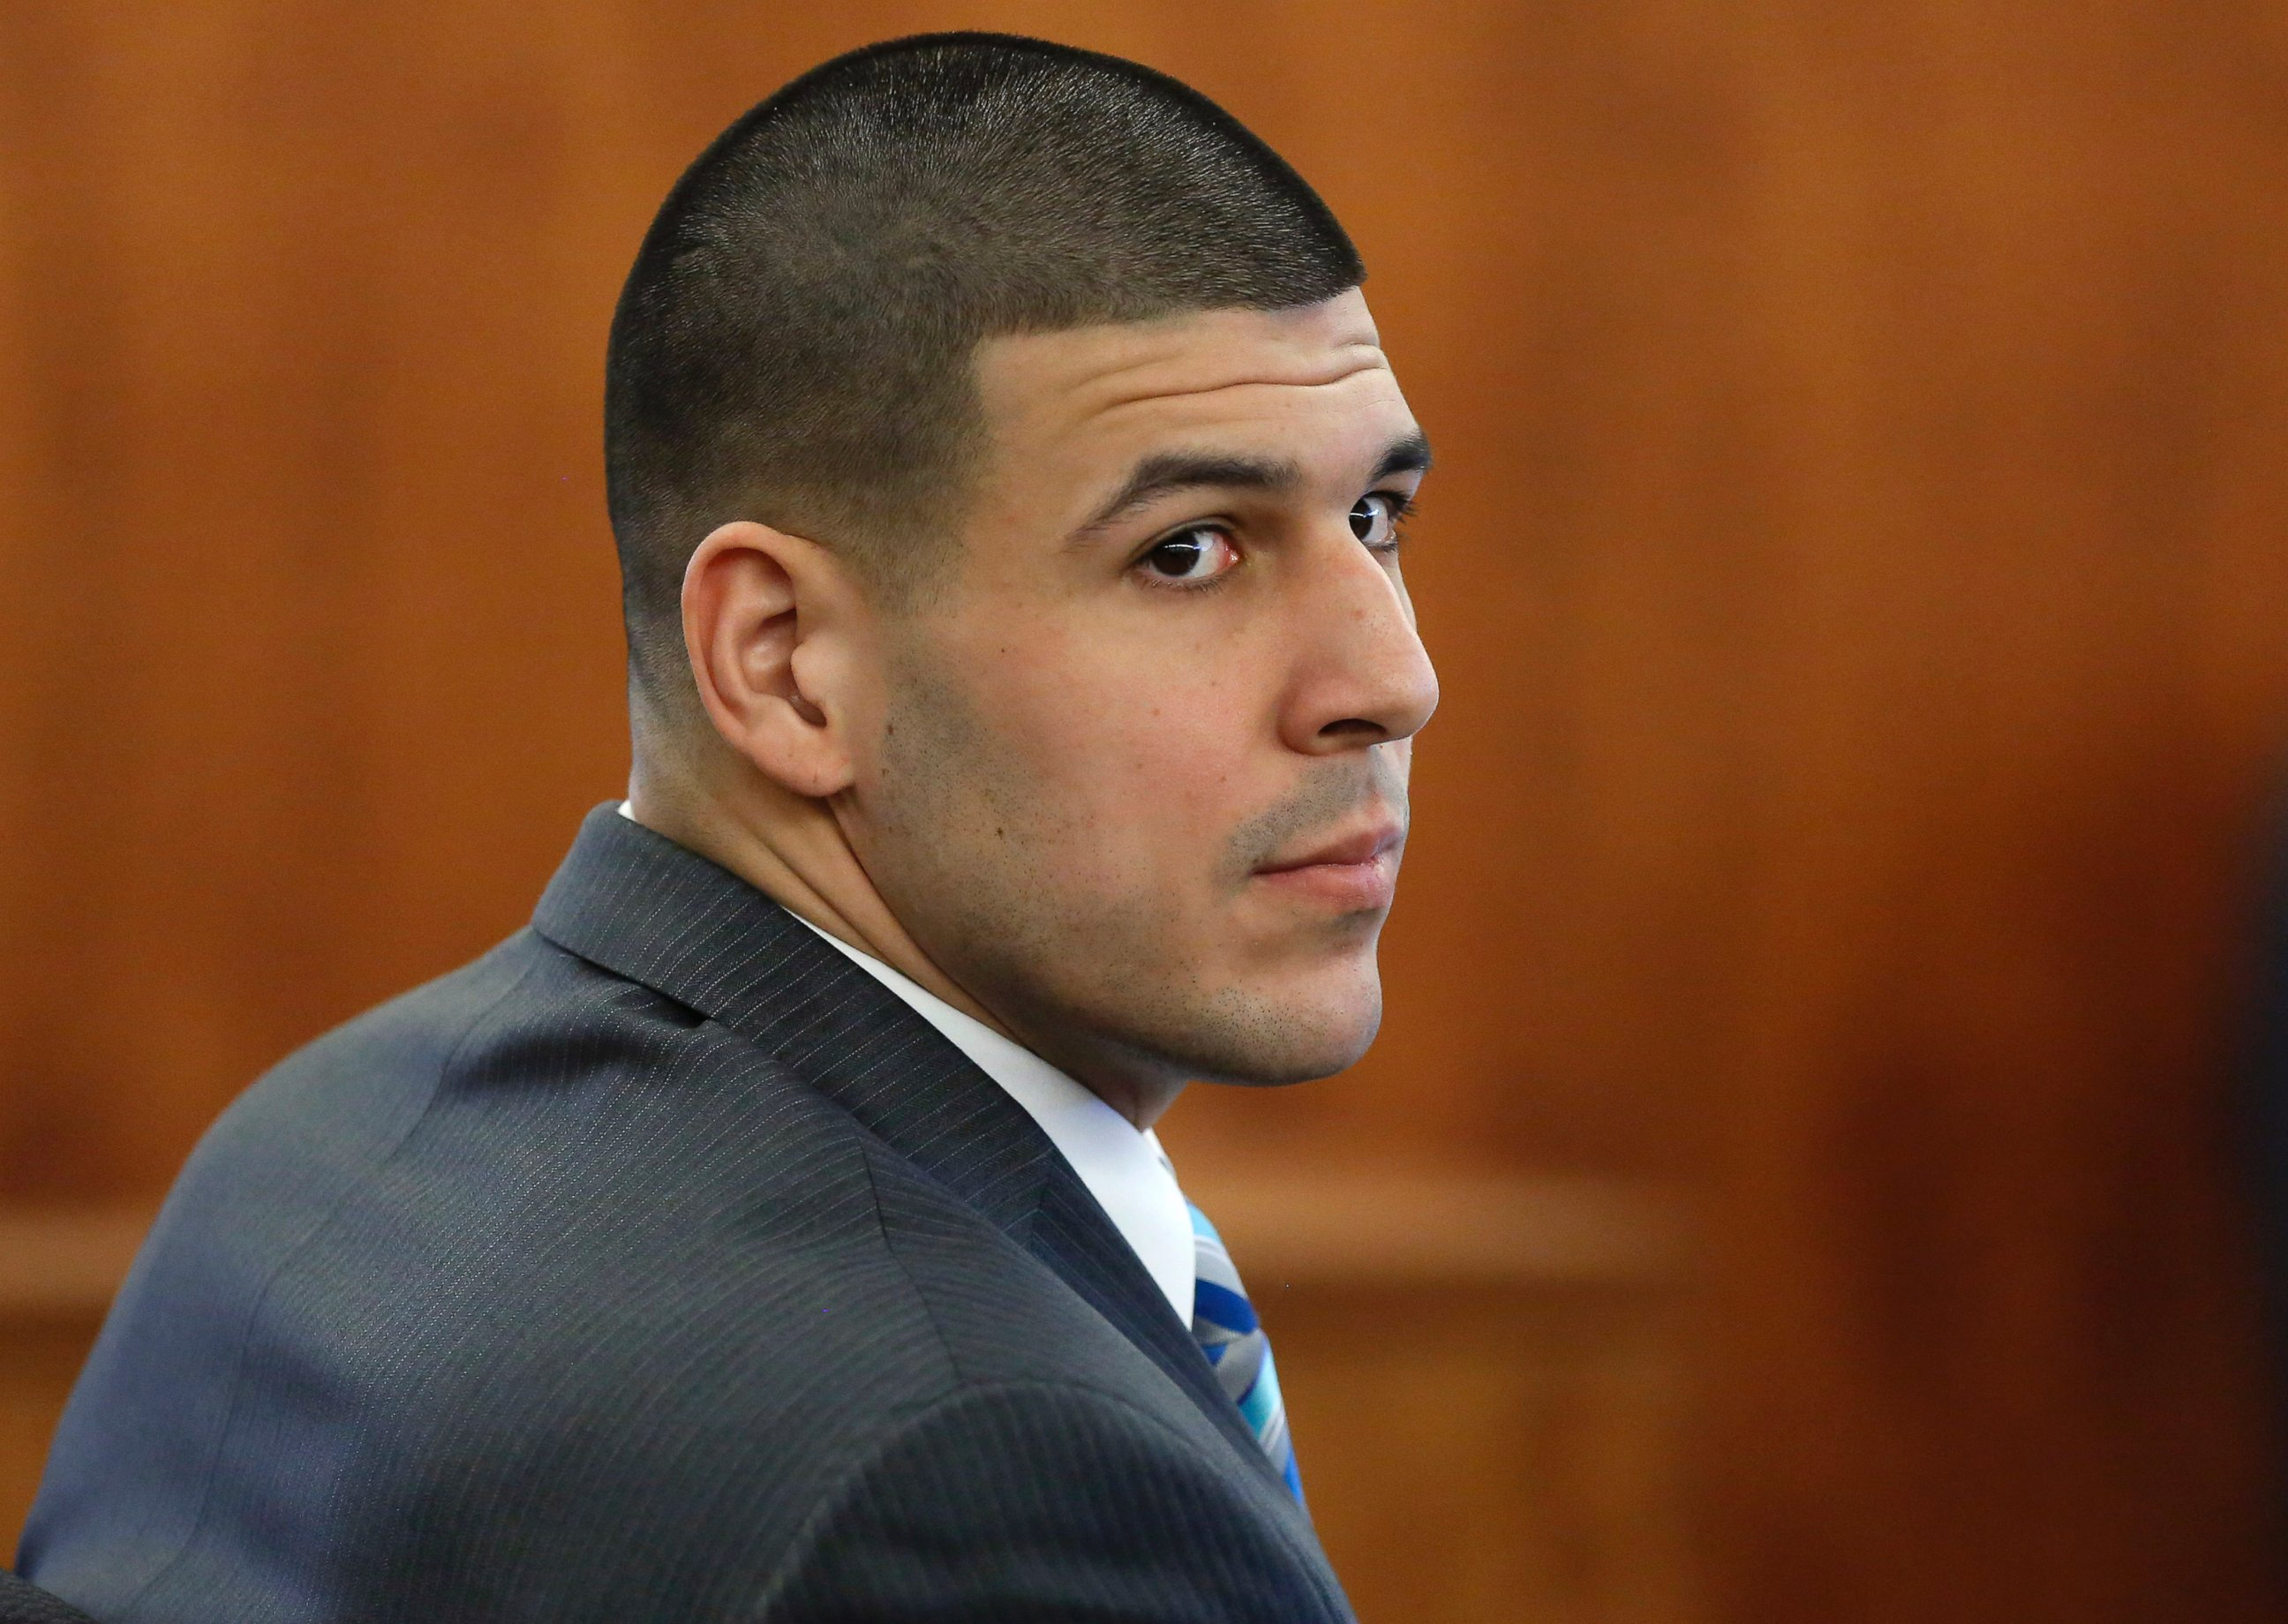 Aaron hernandez was cut by the new england patriots after he was - Photo Former New England Patriots Football Player Aaron Hernandez Sits During His Murder Trial March In Fall River Mass